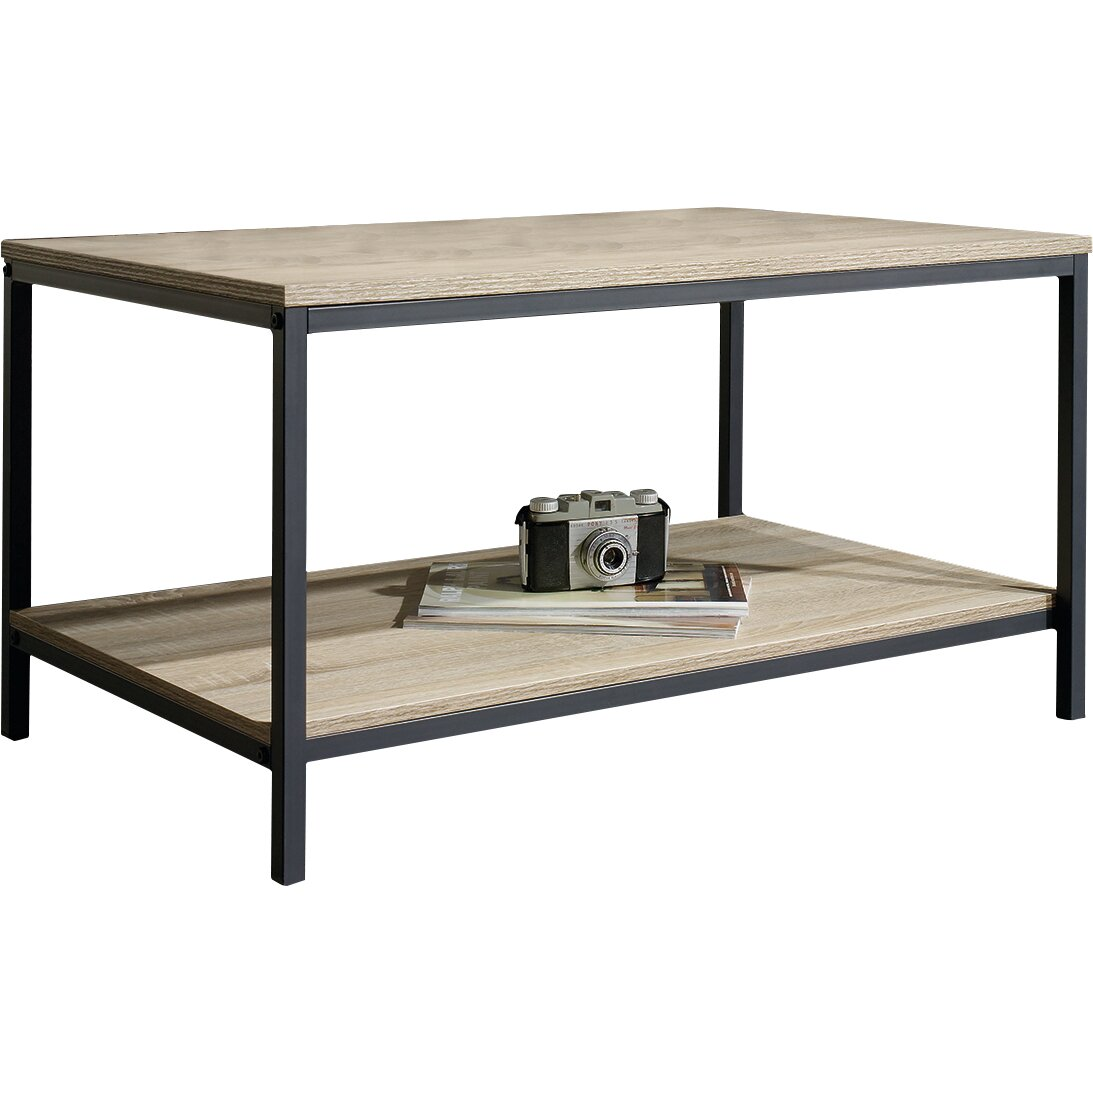 Modern Farmhouse Coffee Table: Laurel Foundry Modern Farmhouse Ermont Coffee Table